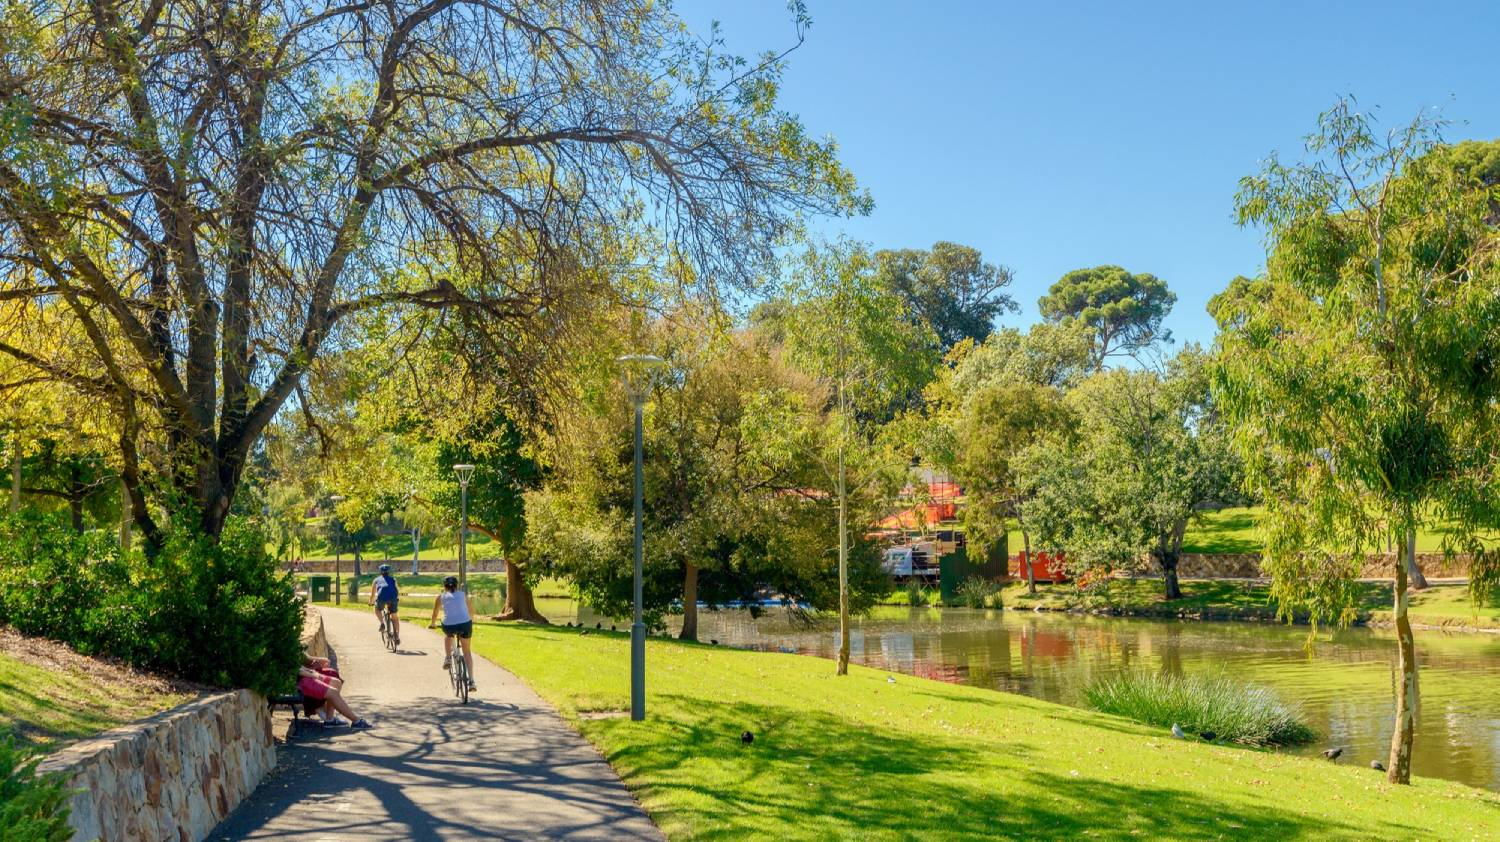 River Torrens Linear Park Trail - Things To Do In Adelaide